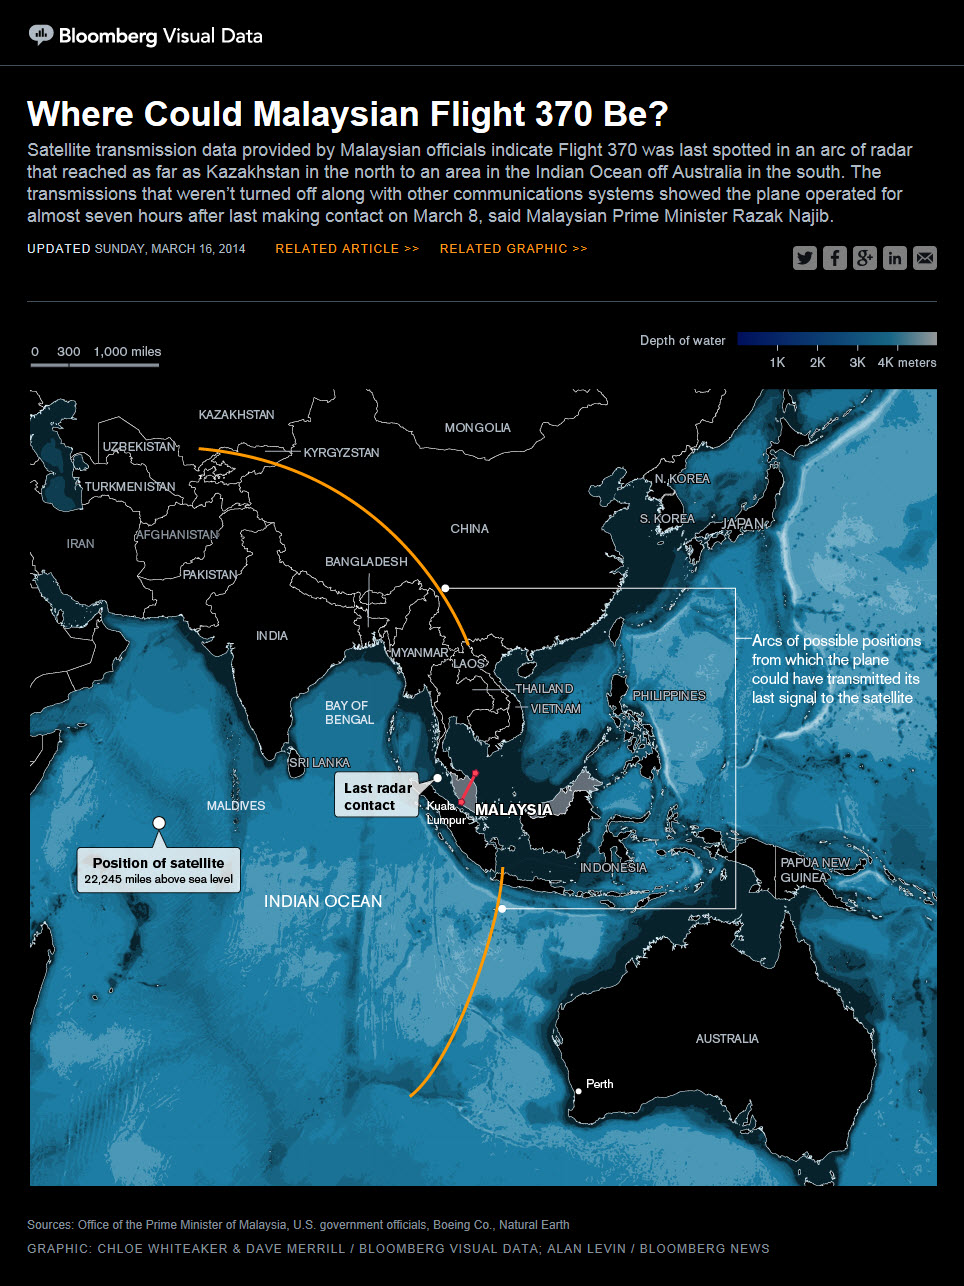 Where Could Malaysian Flight 370 Be Infographic